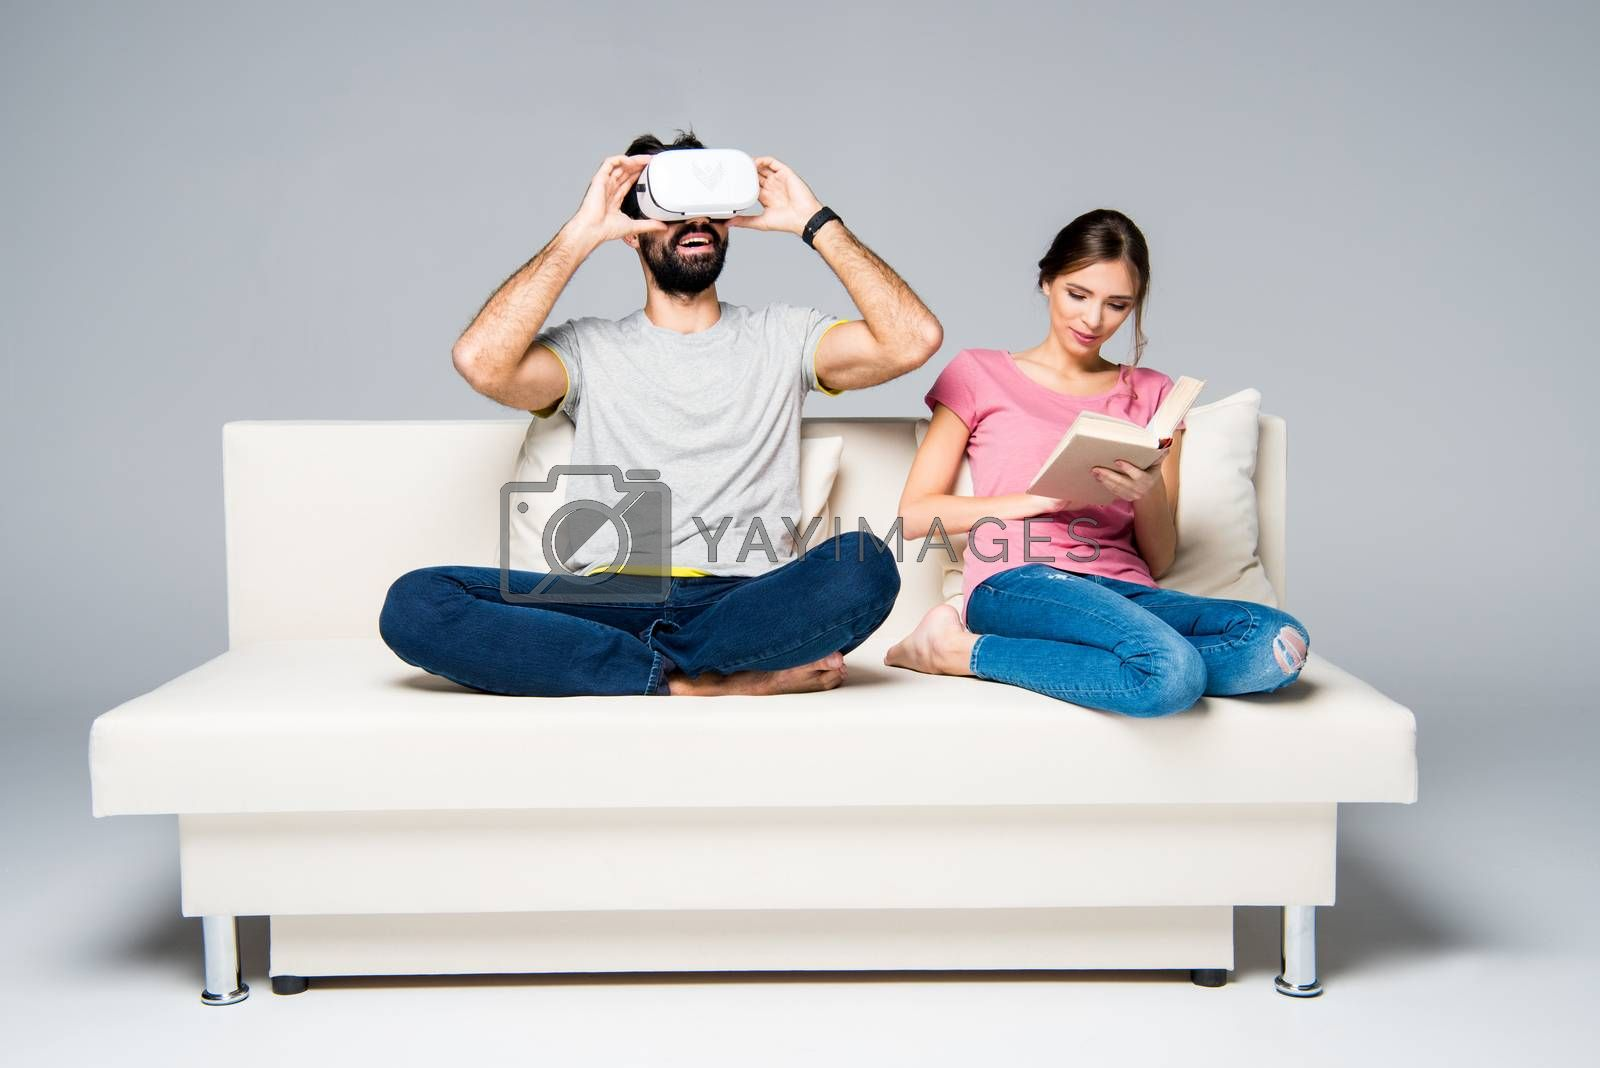 Couple resting on white couch, woman reading book and man using virtual reality headset